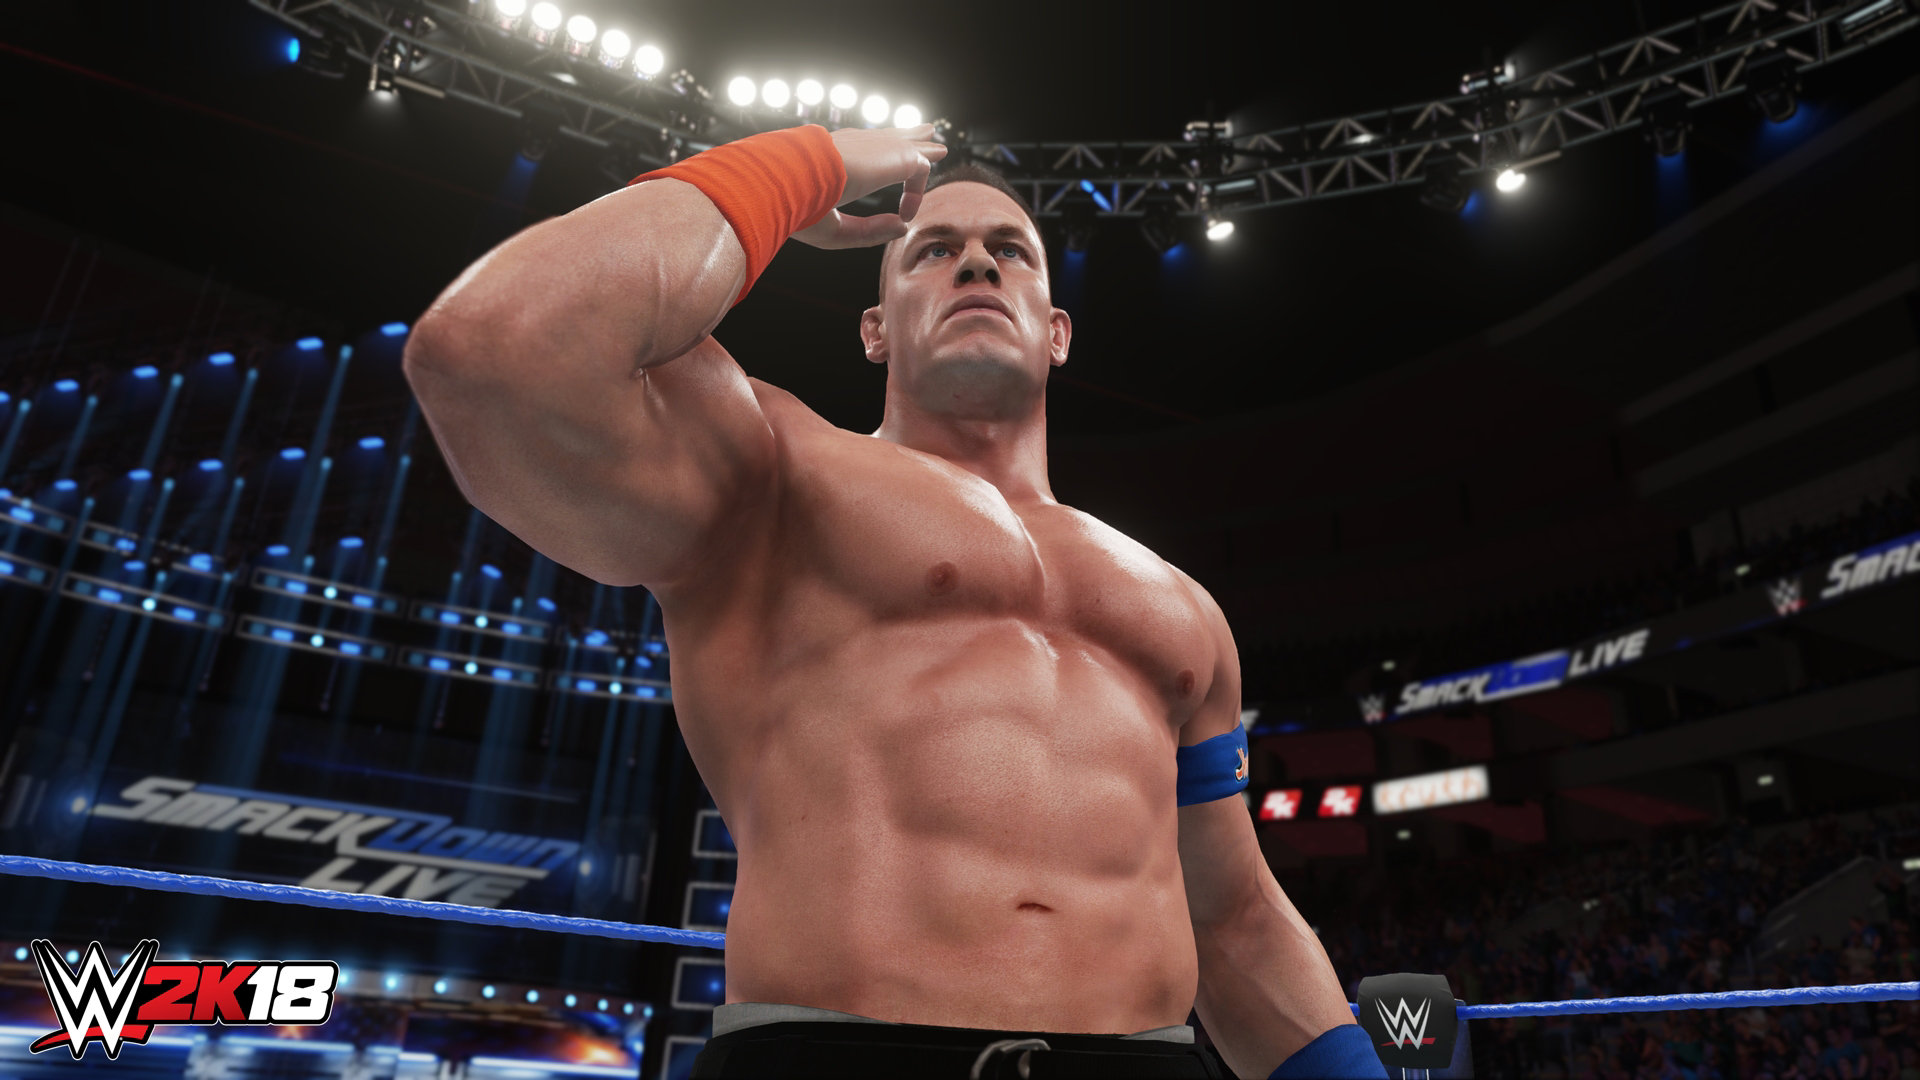 wwe-2k18-screen-05-ps4-us-12sep17?$Media